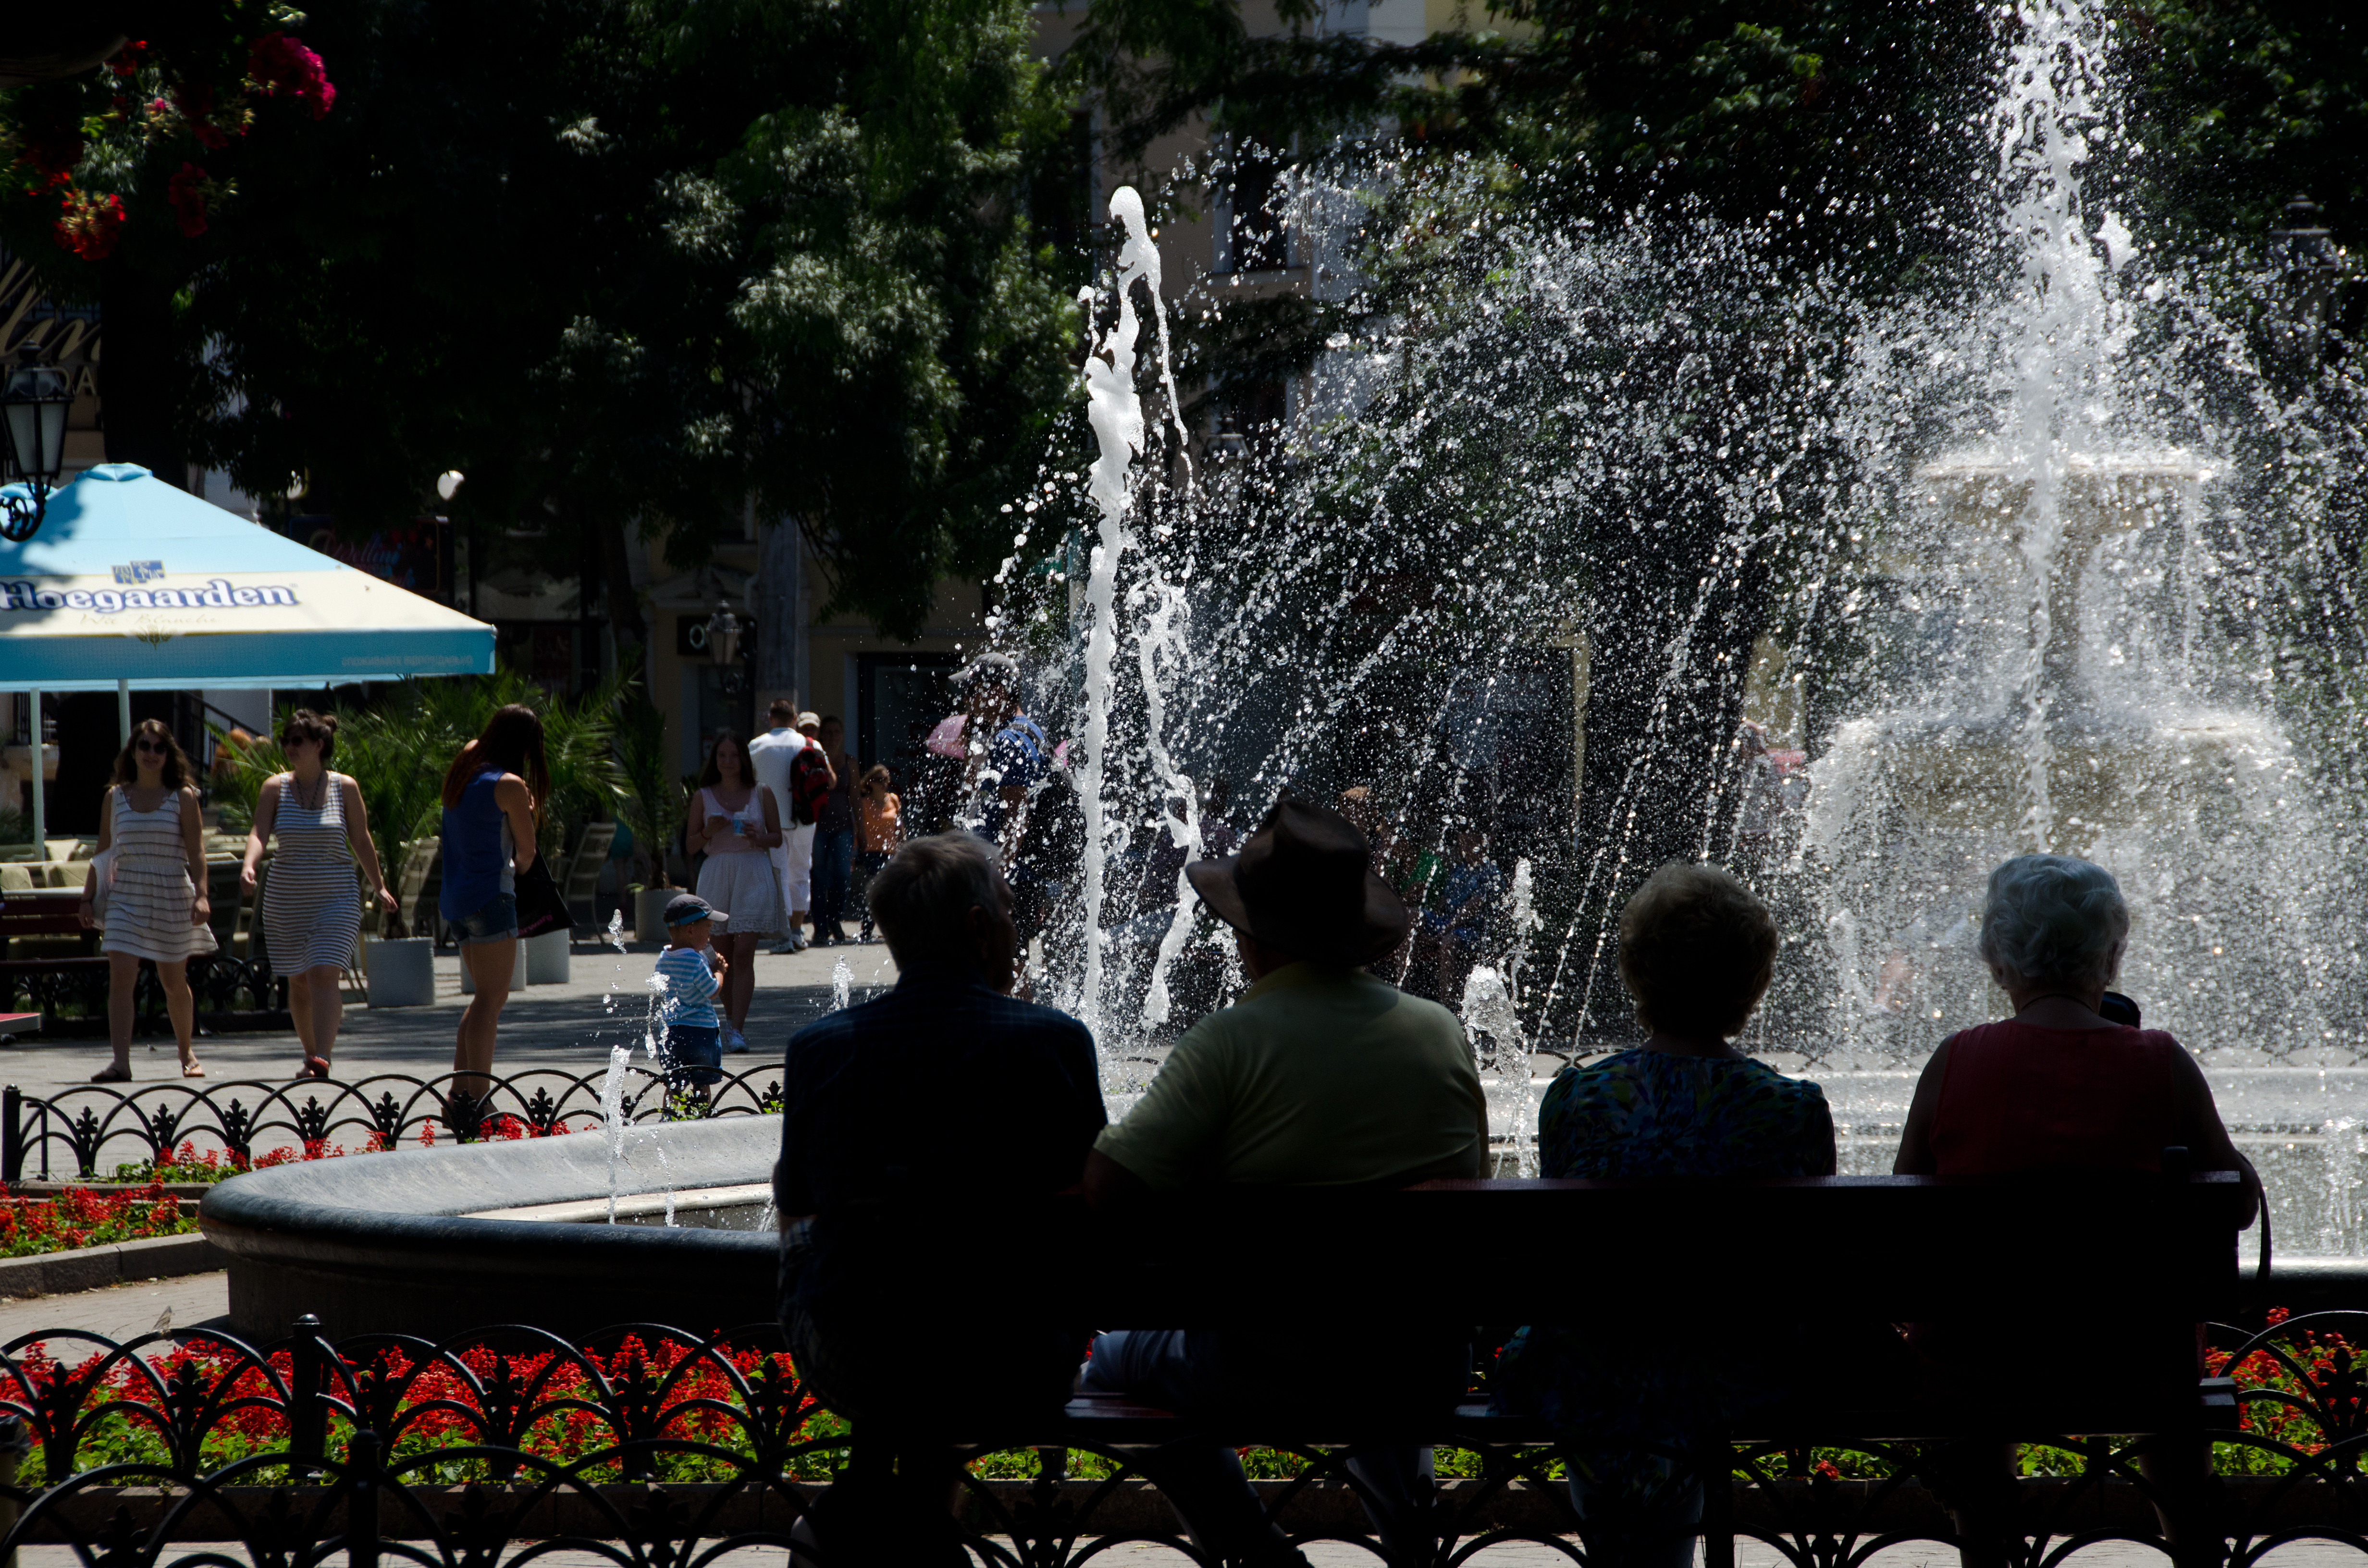 Odessa - seated at the fountain